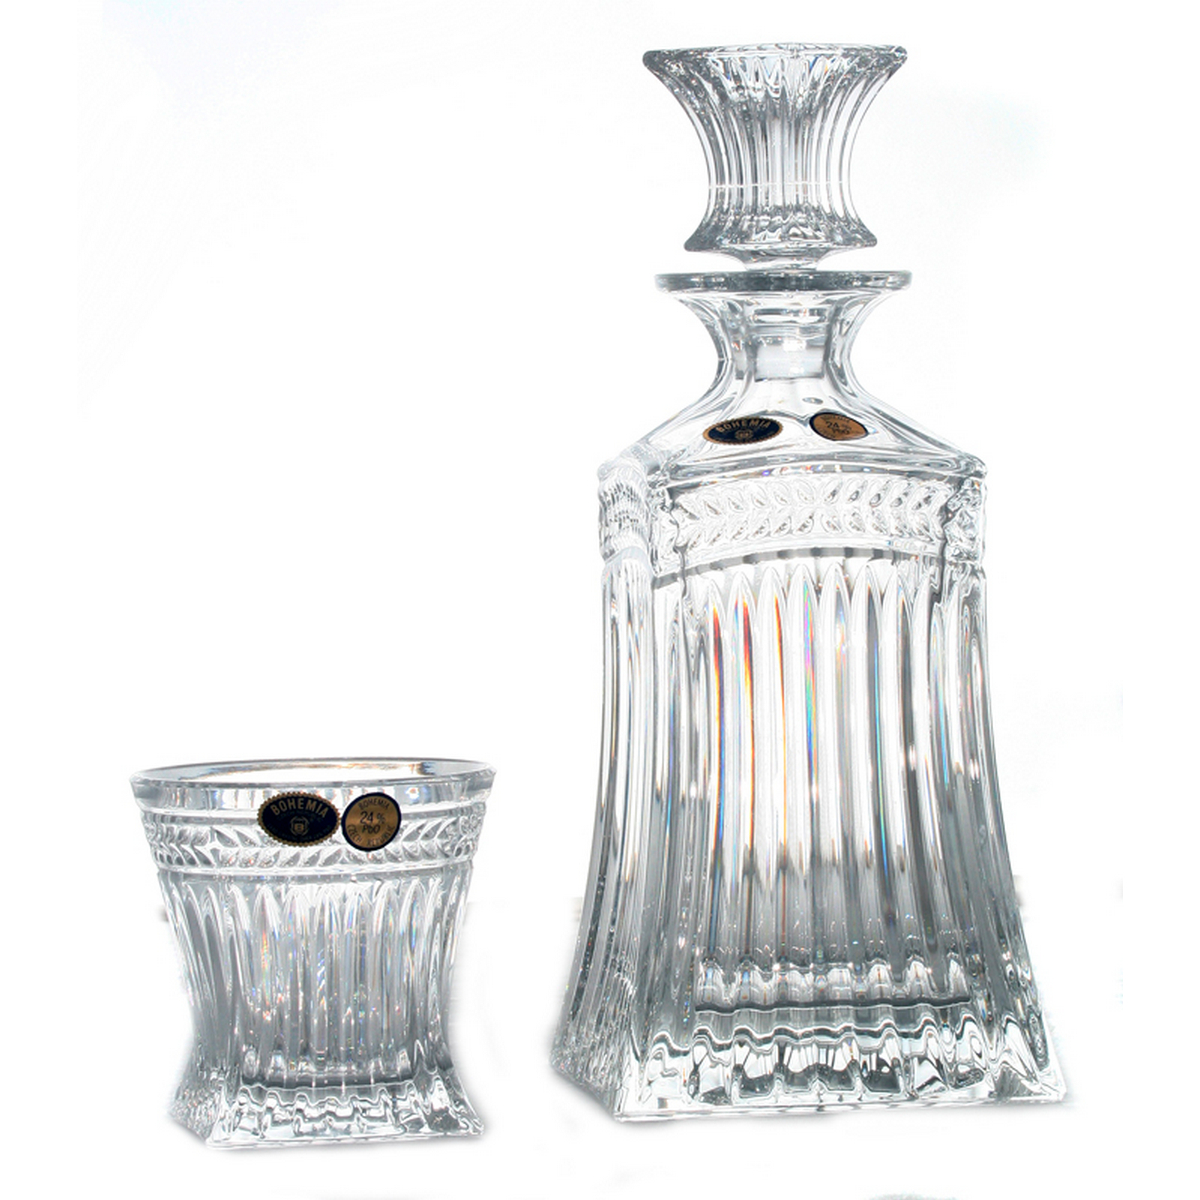 IMPERIAL Set 6 pahare si decantor cristal Bohemia whisky